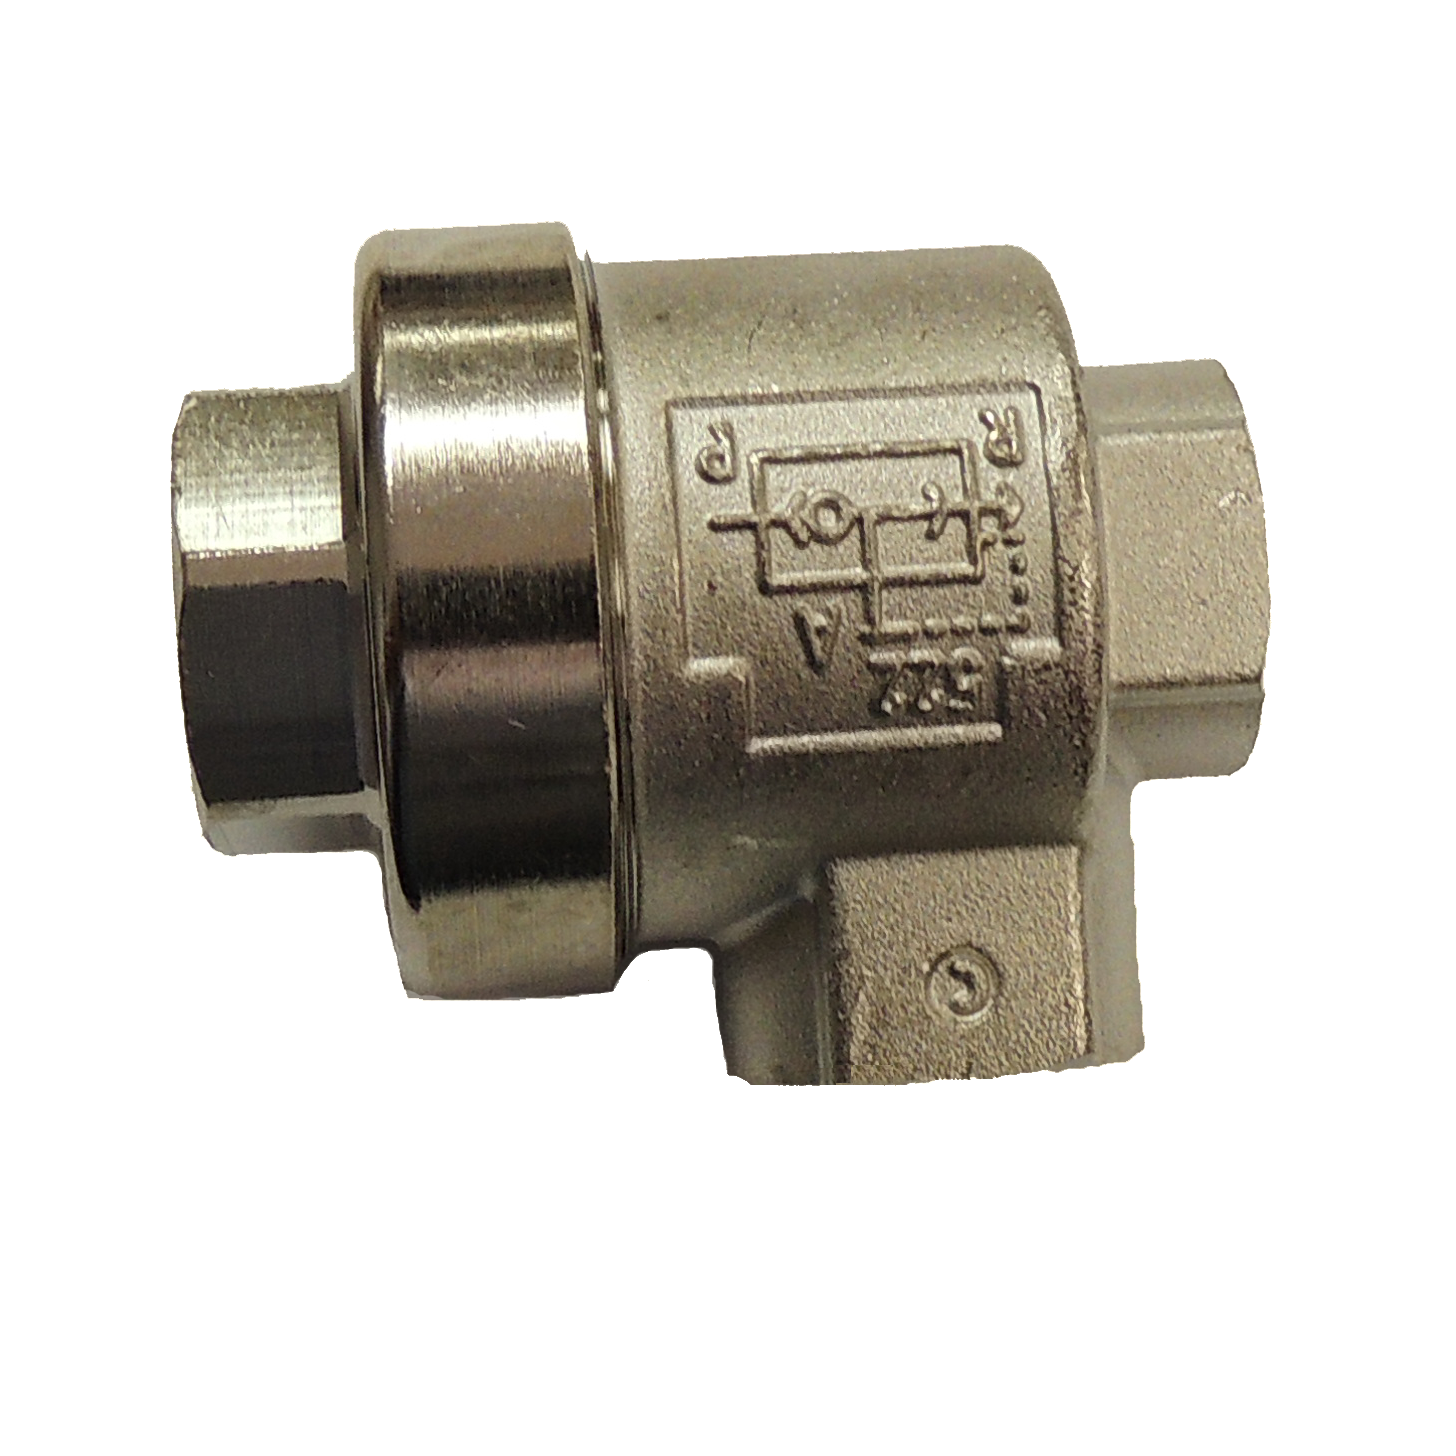 Hunter RP6-0481 Bead Blast Inflation Valve VSC for TC325  TC350  TC3250  TC3500